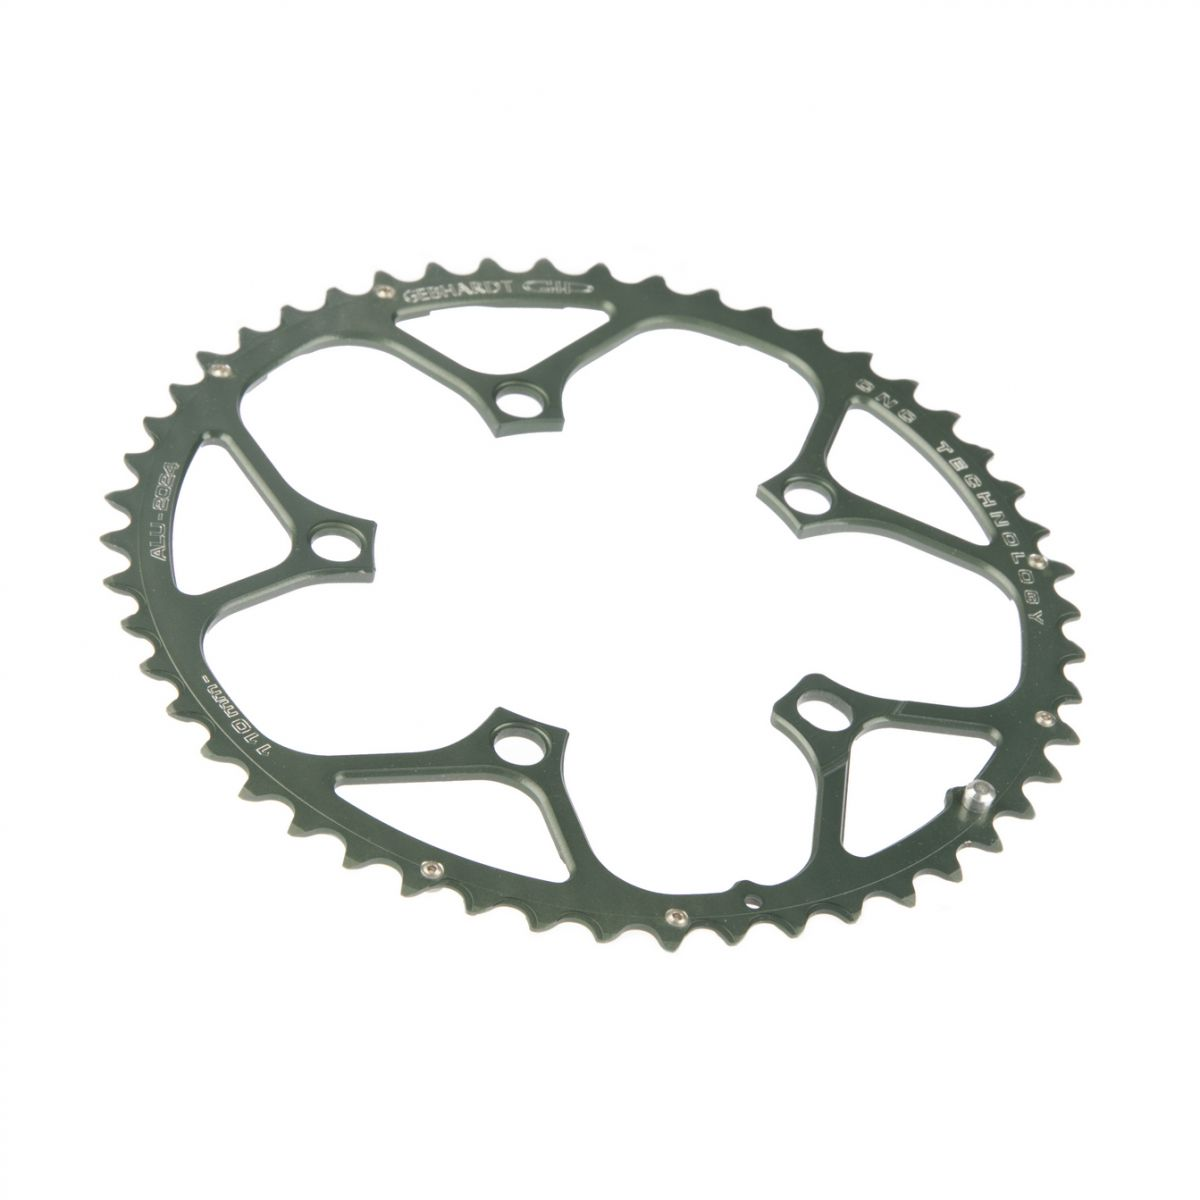 gebhardt chainring cnc ultra torque record chorus bcd 110 mm 5hole 50t black